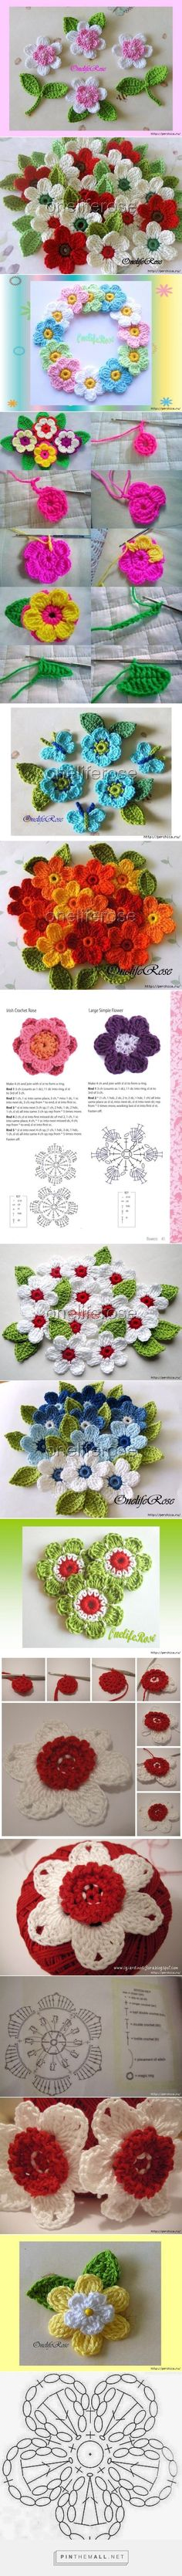 #crochet #lovey #flowers #leaves